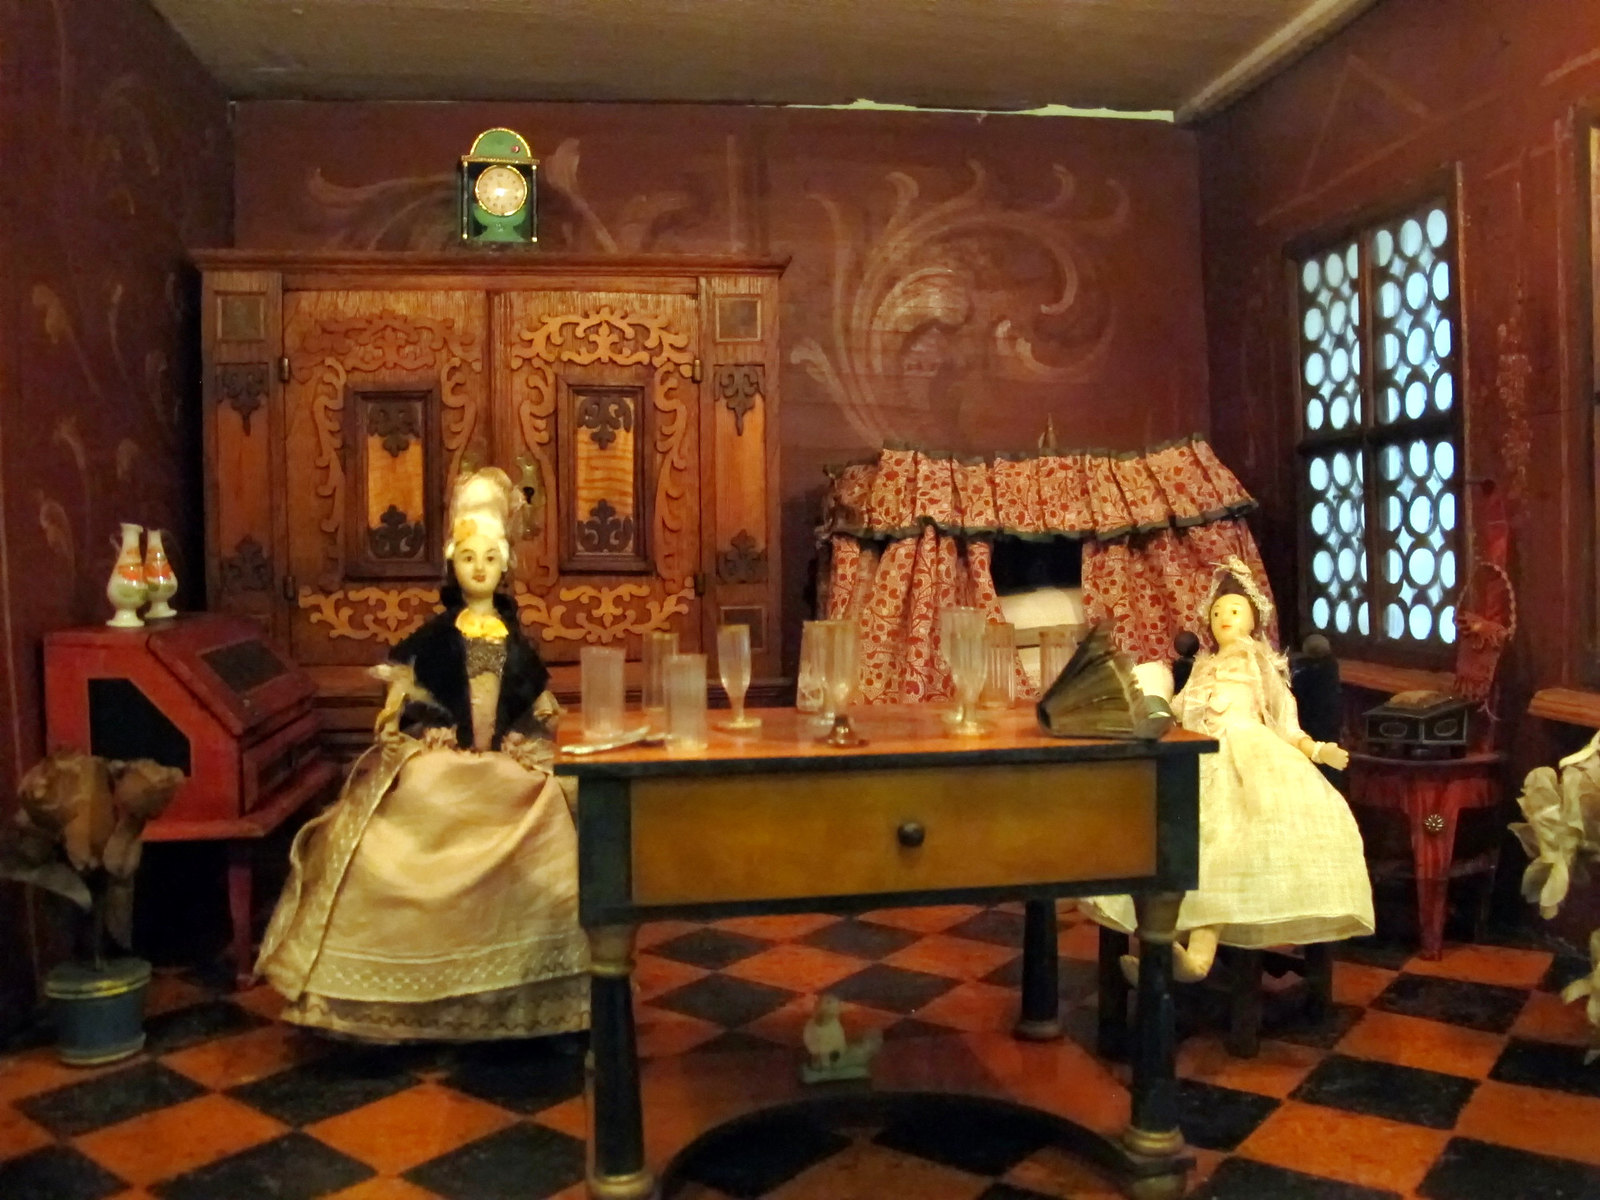 Bäumler family doll house nuremberg, ca 1650-1700. Credit Sailko